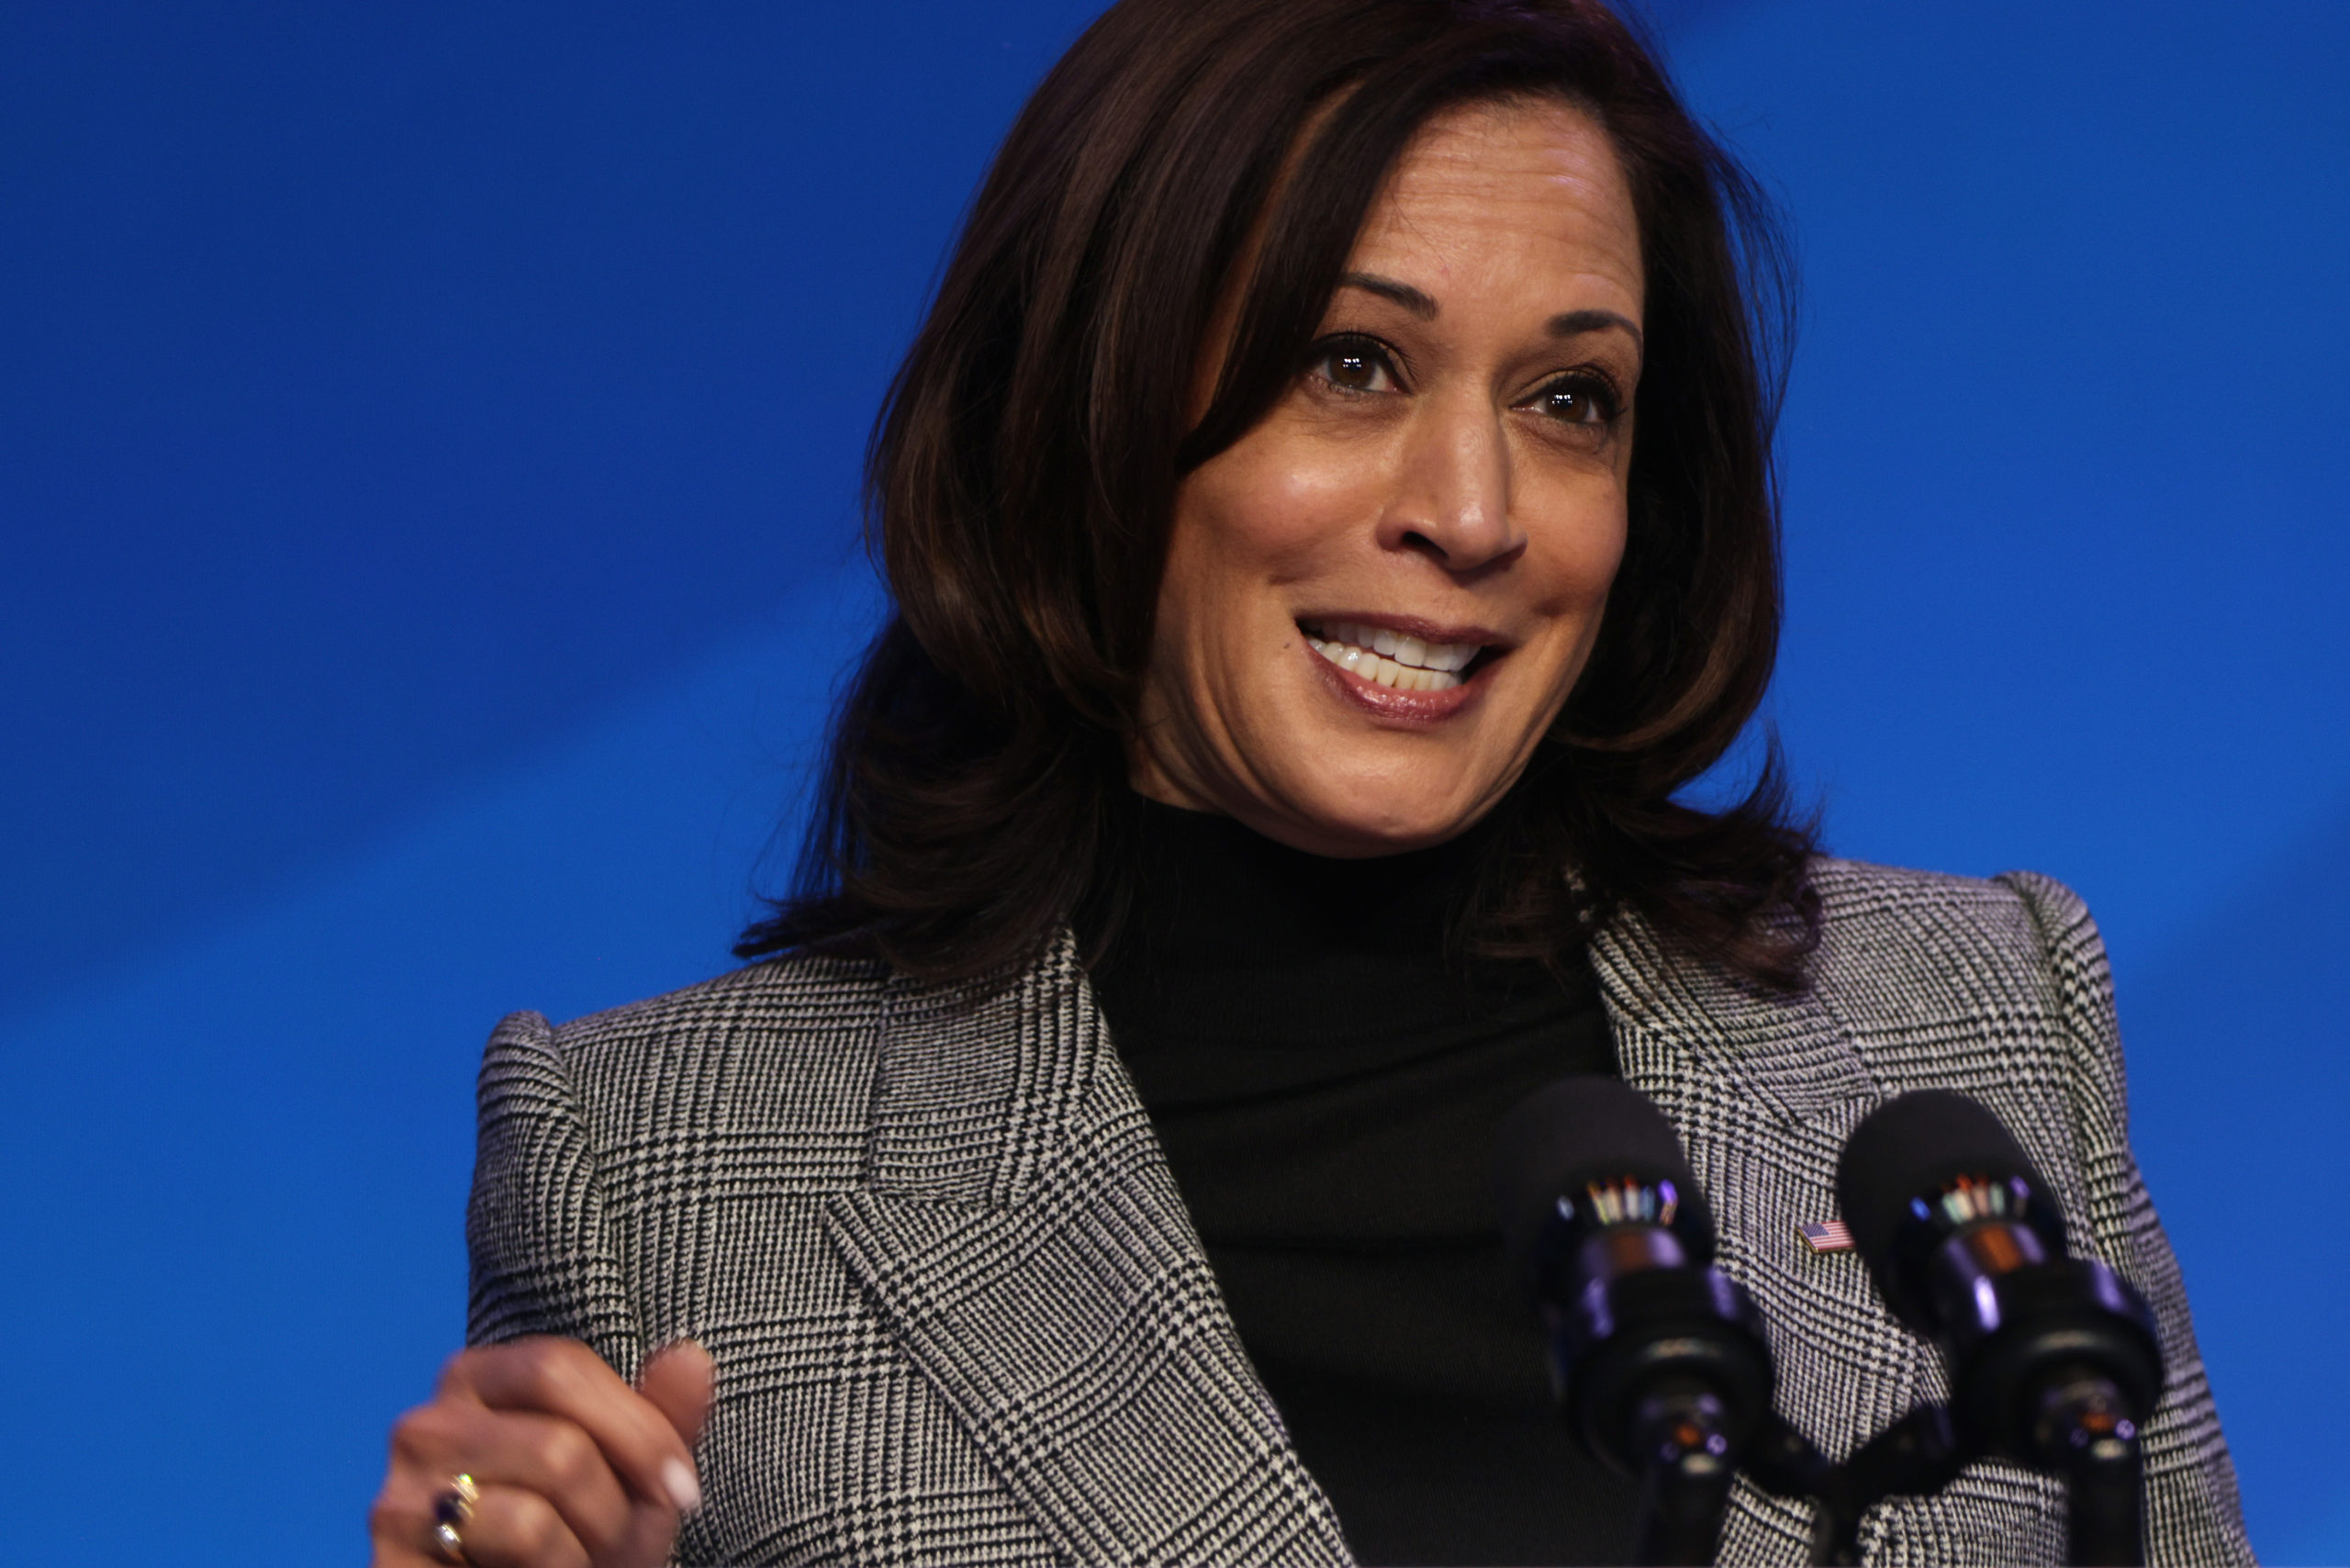 WILMINGTON, DELAWARE - JANUARY 16: U.S. Vice President-elect Kamala Harris speaks during an announcement January 16, 2021 at the Queen theater in Wilmington, Delaware. President-elect Joe Biden has announced key members of his incoming White House science team. (Photo by Alex Wong/Getty Images)